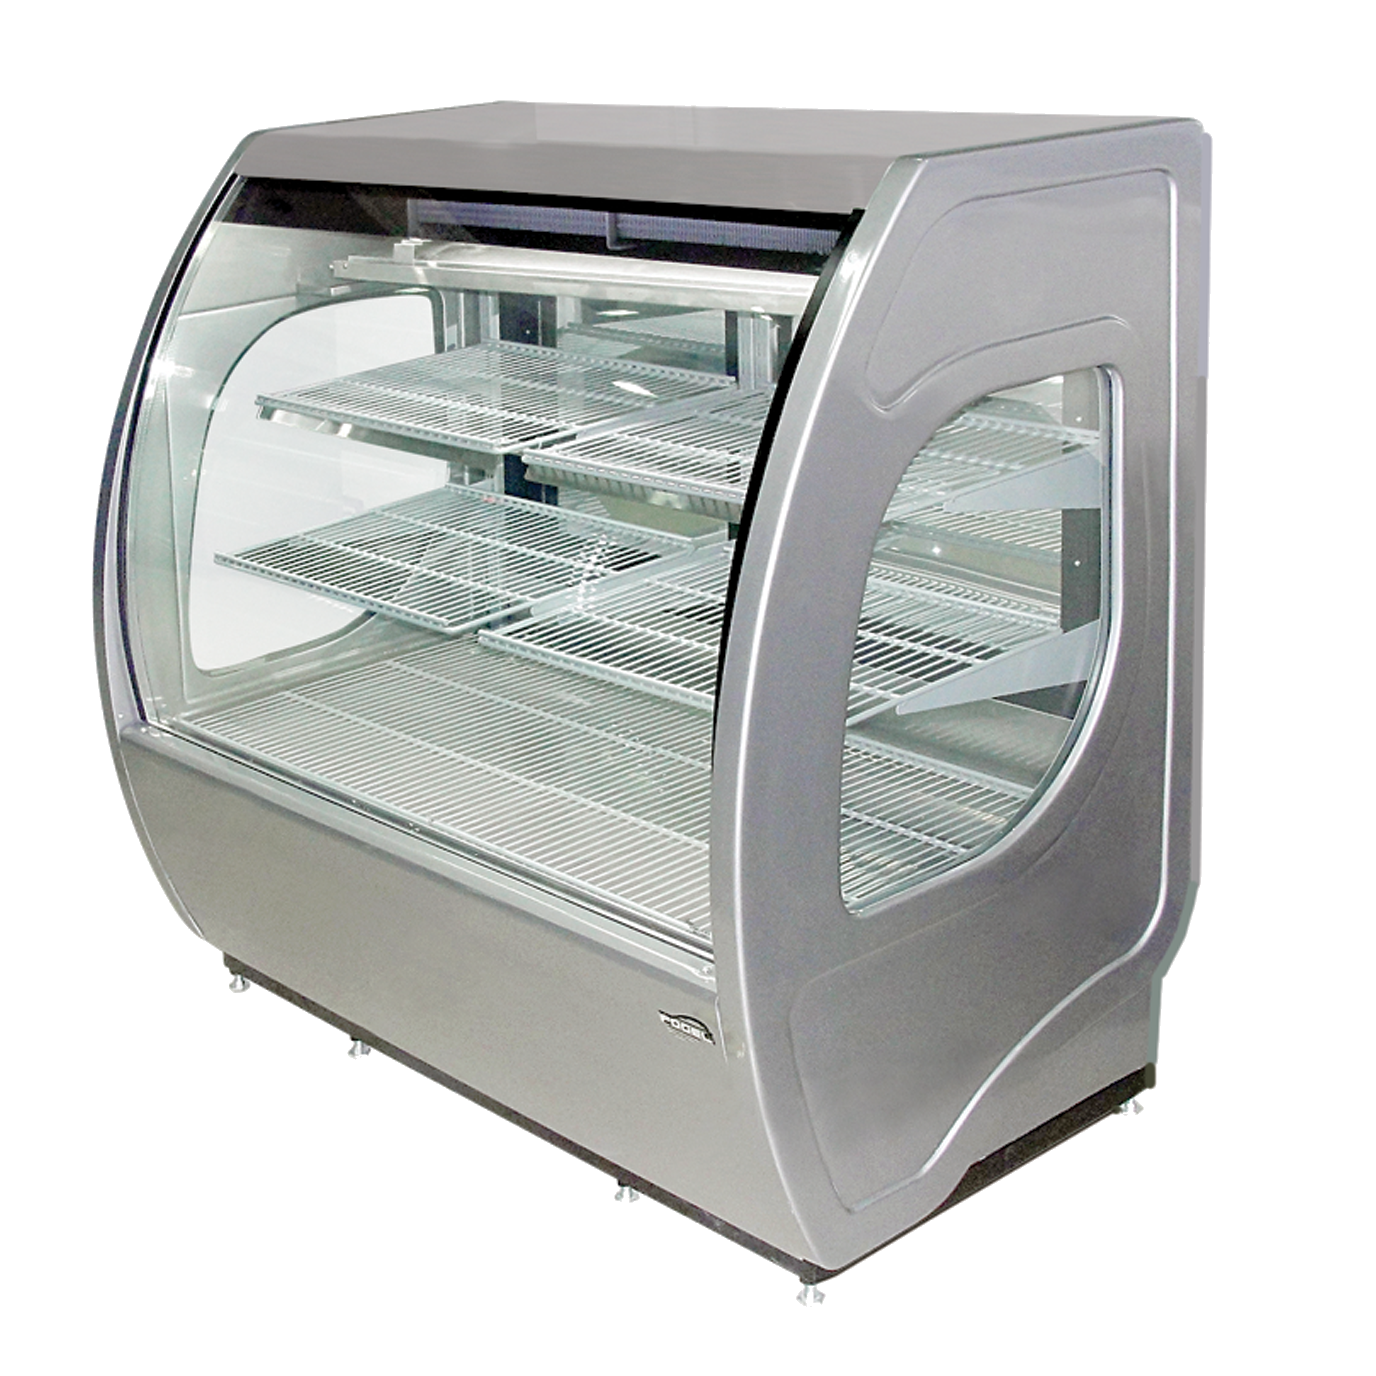 Fogel USA ELITE-6-DC-G display case, refrigerated deli